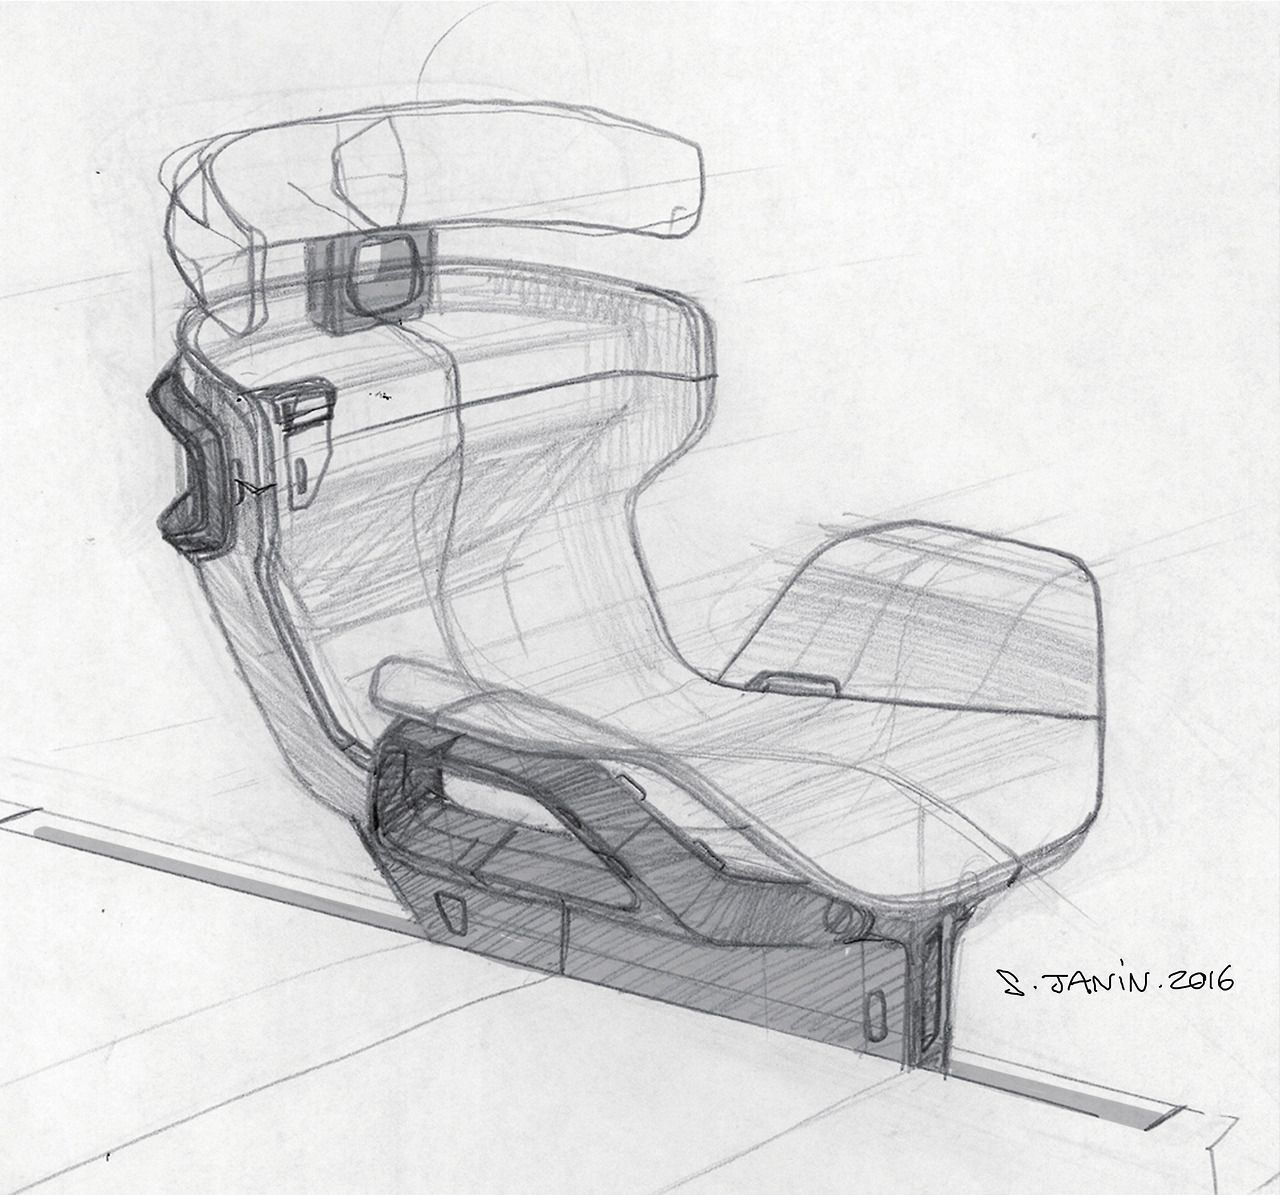 Pin By Kiran Sagoo On Temp Pinterest Interior Sketch Car